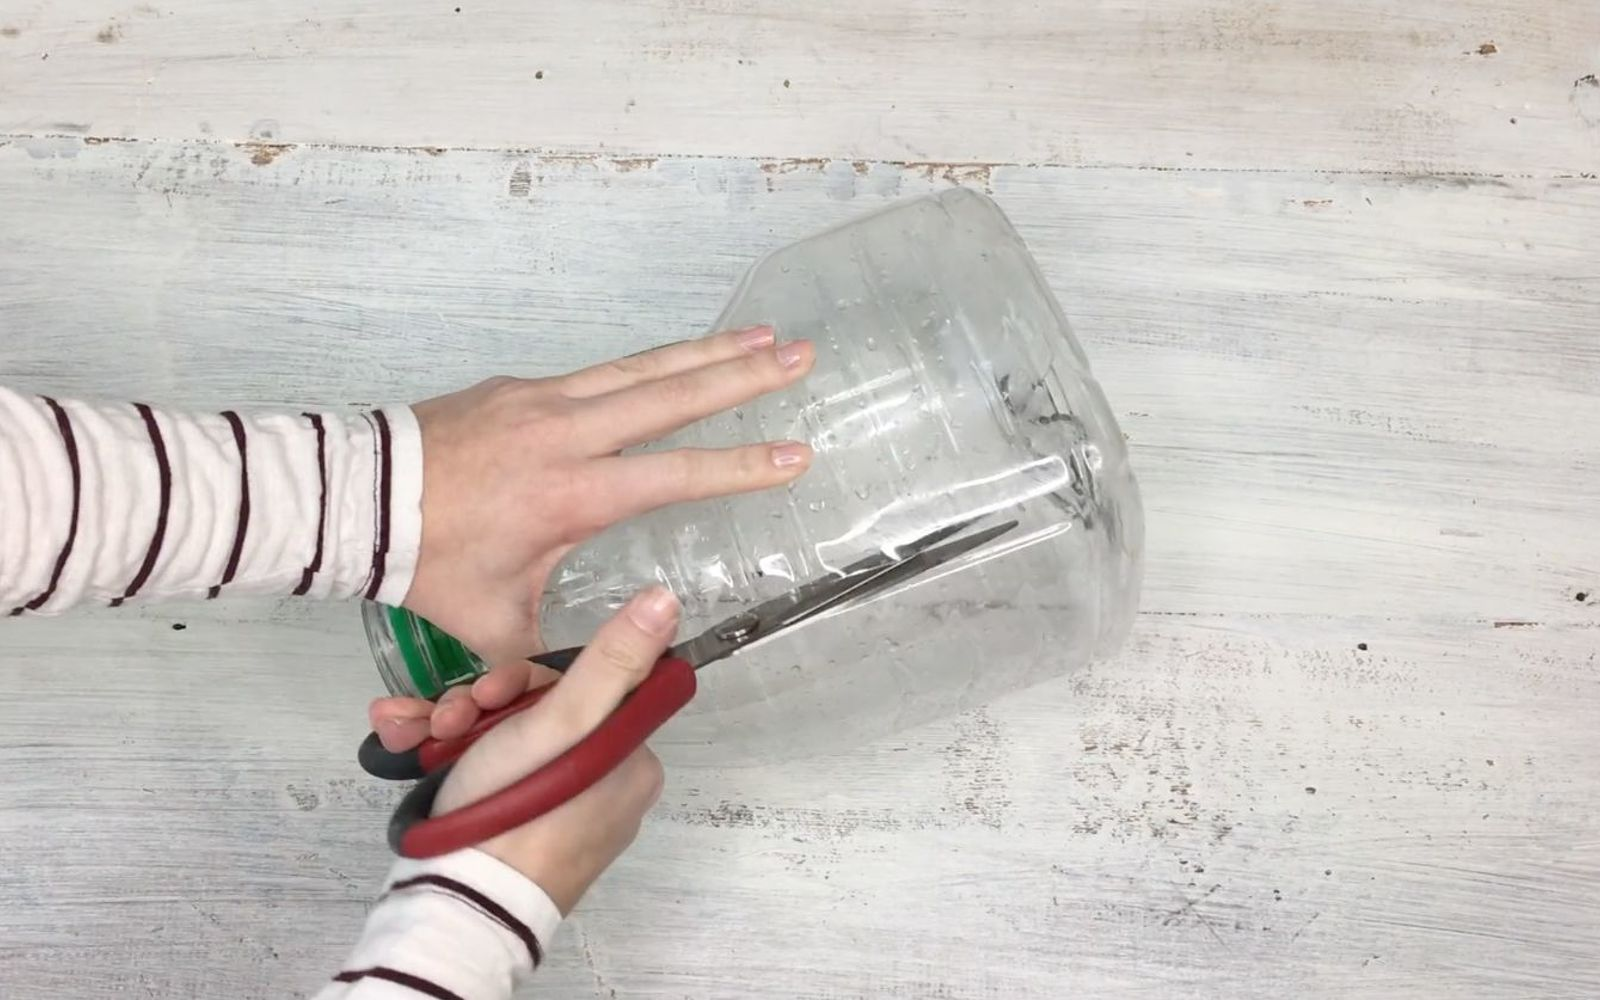 s upcycle your old clothing items for these great ideas, Step 4 Cut out the marked area of bottle